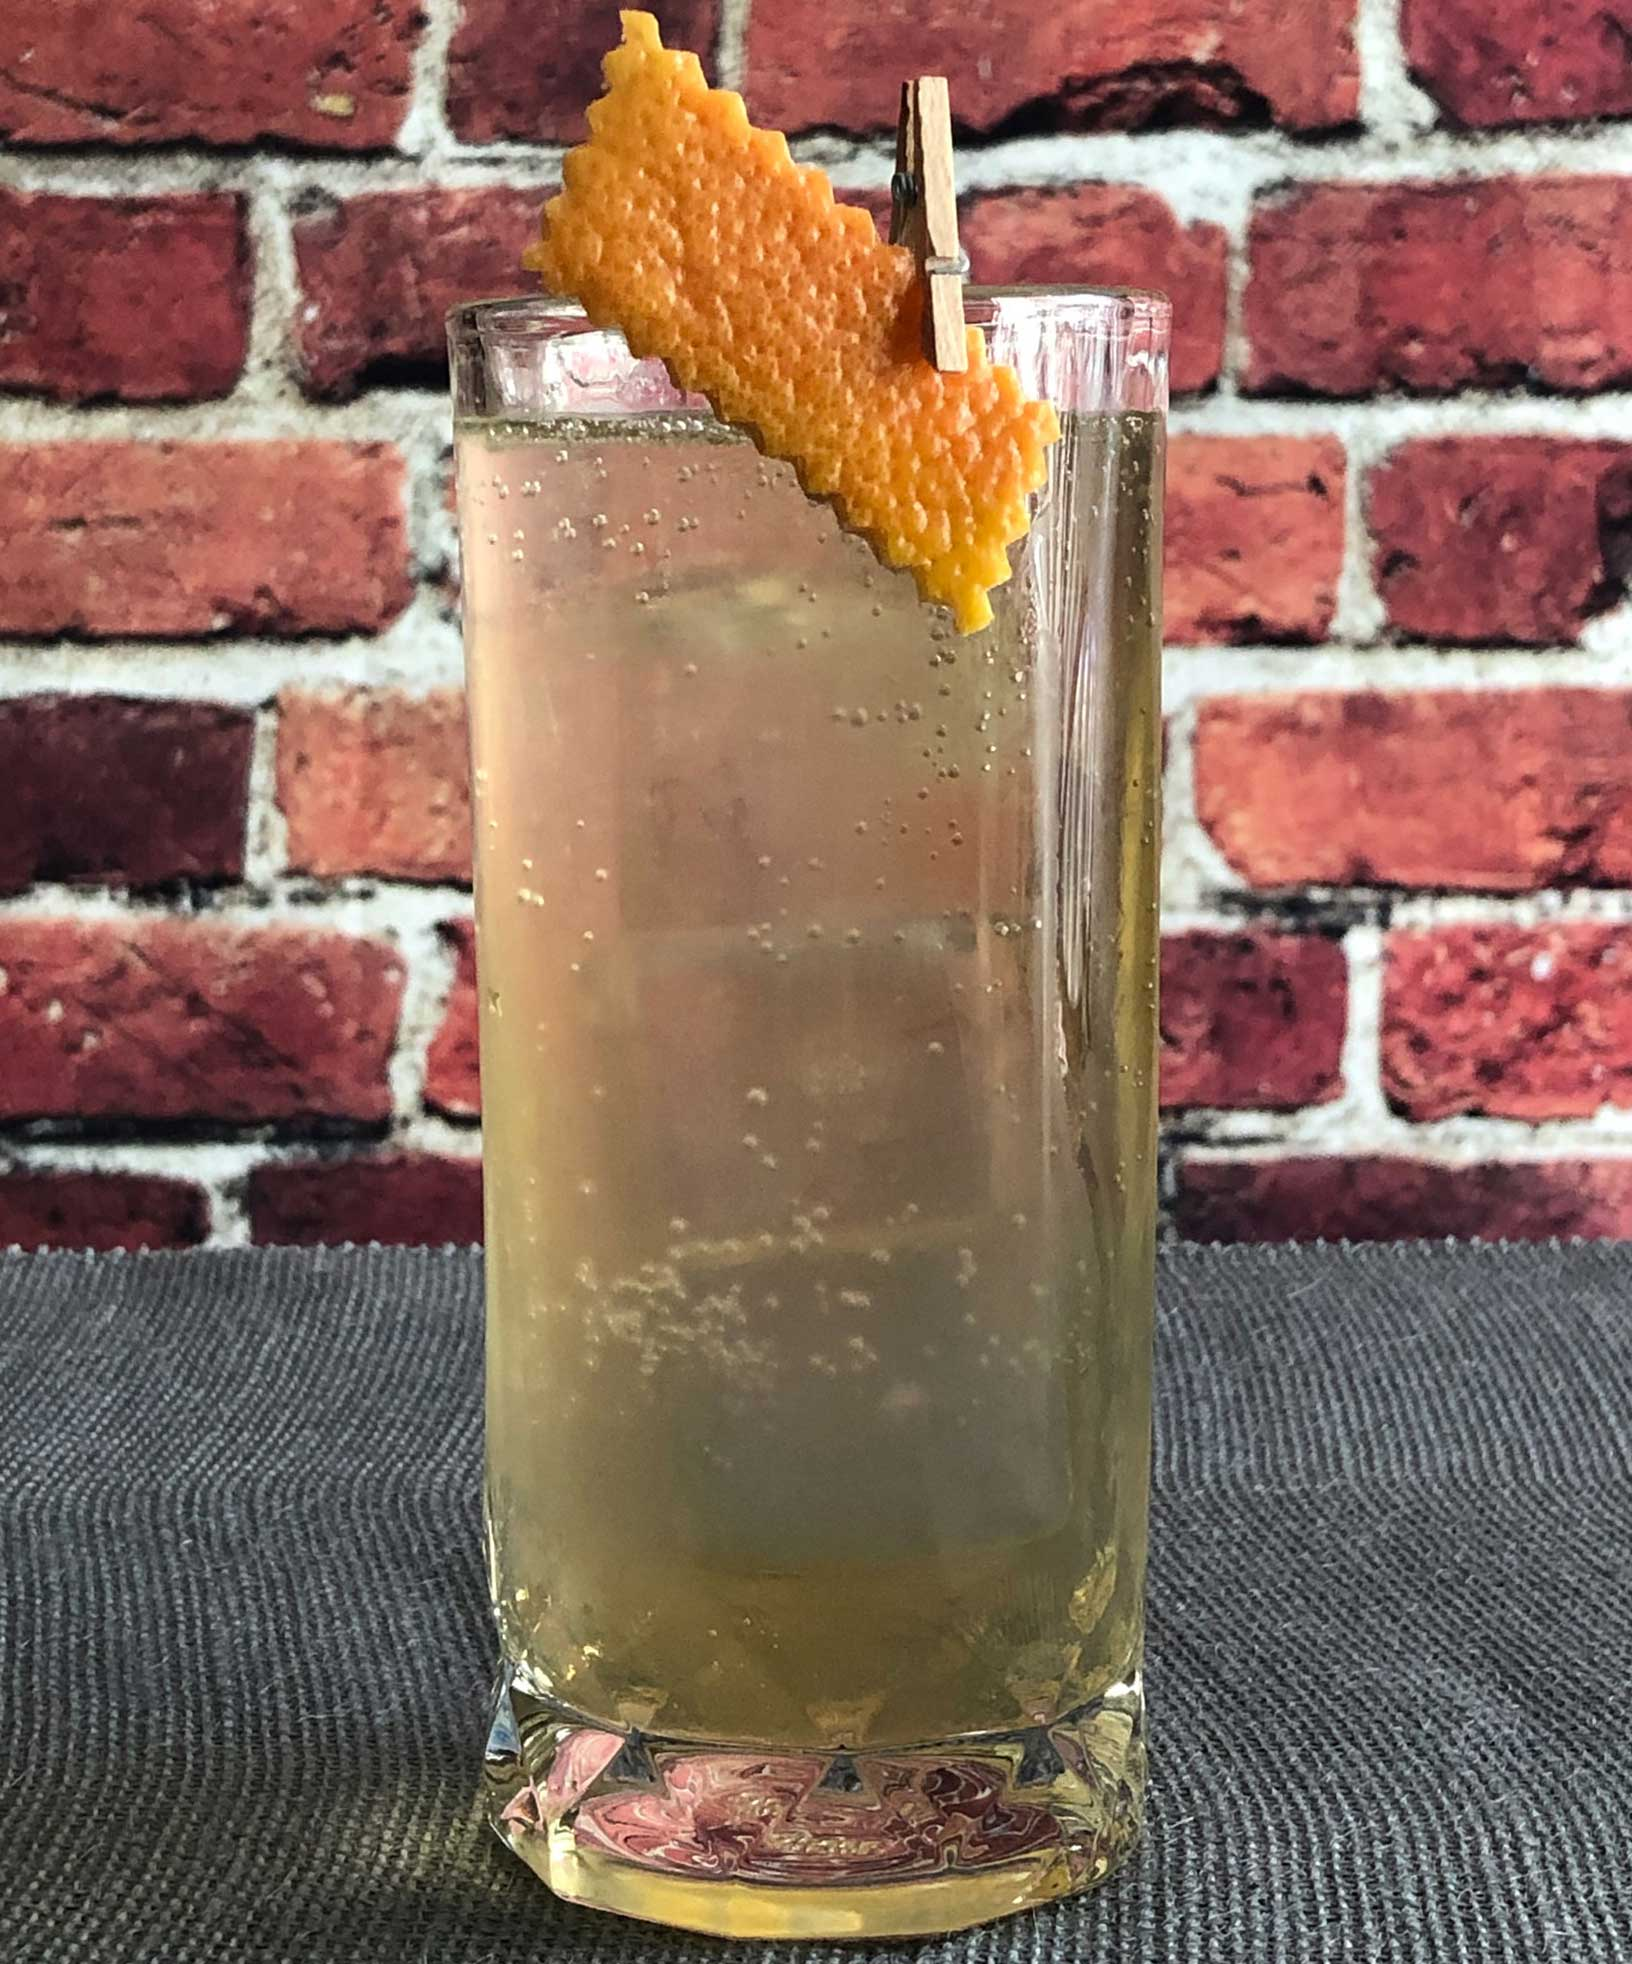 An example of the Salt of the Earth, the mixed drink (cocktail) featuring Fever Tree Indian Tonic Water, Amaro Alta Verde, and Mattei Cap Corse Blanc Quinquina; photo by Lee Edwards